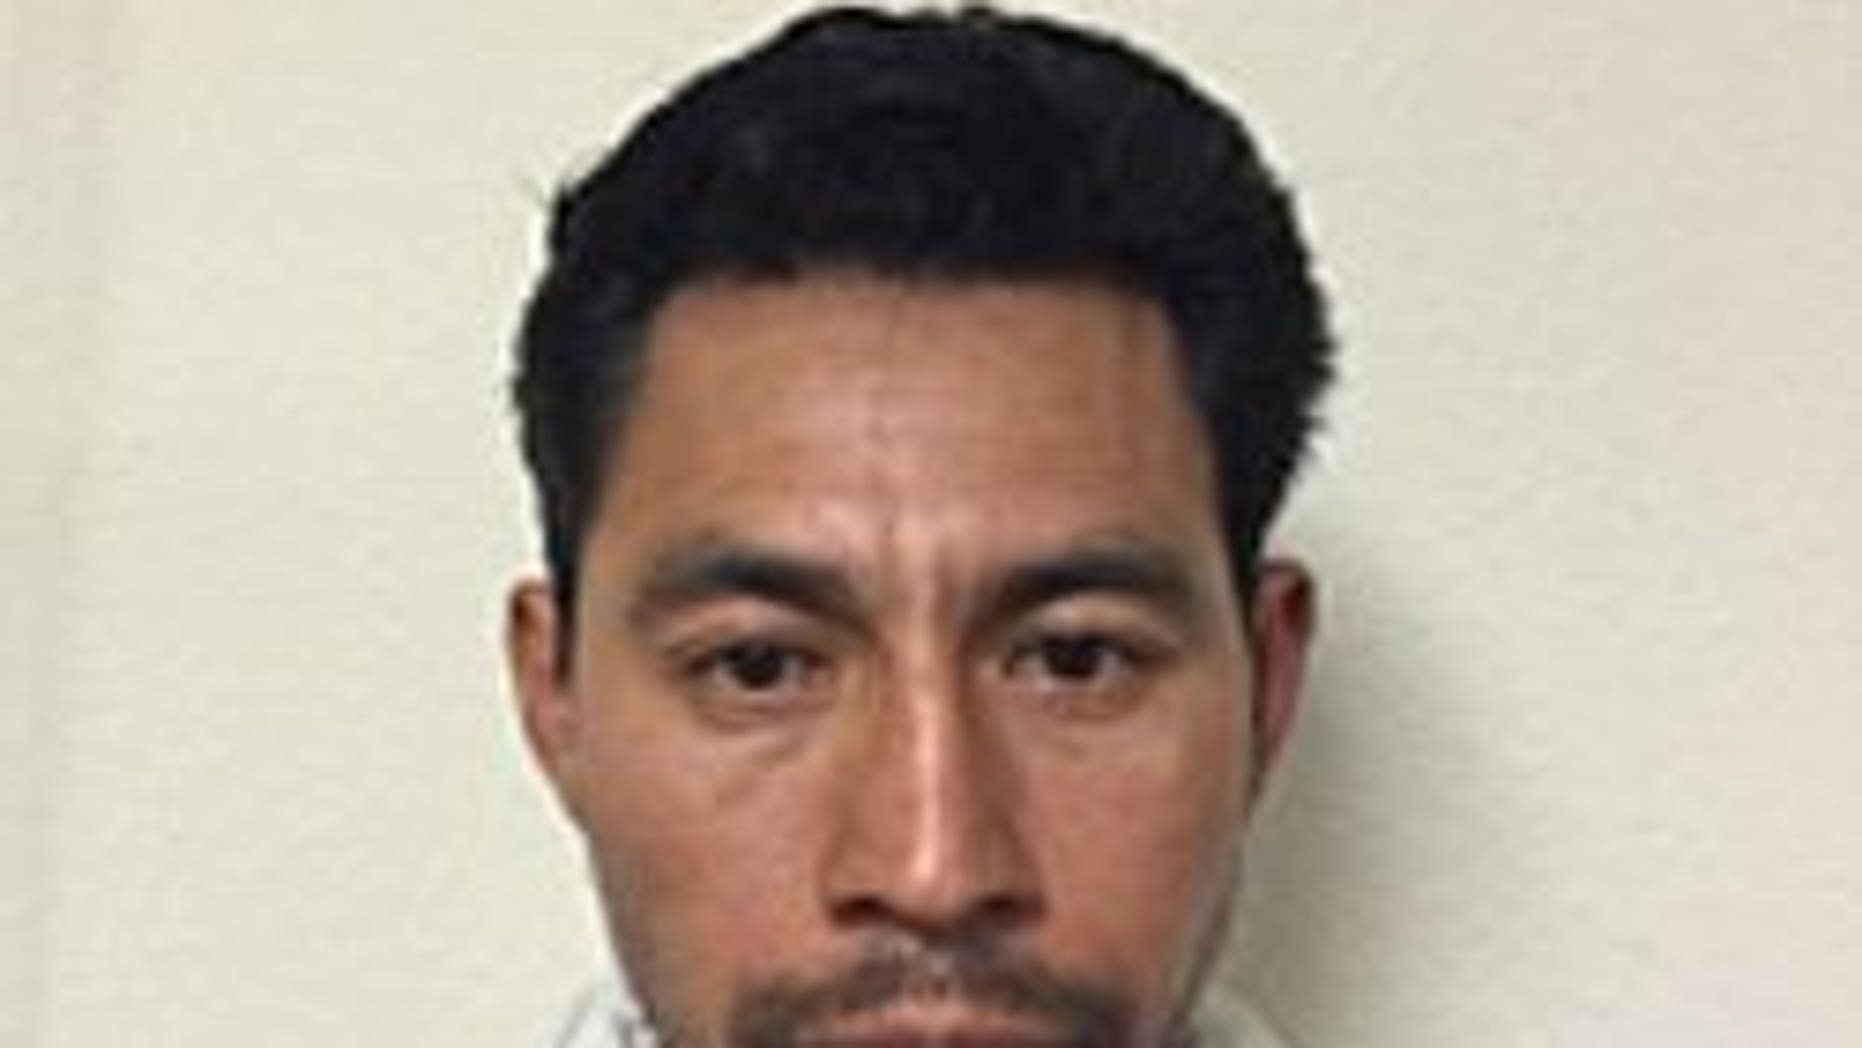 Sexual assault suspect Pedro Diaz Morales, 36, surrendered to the U.S. Marshals Service in Tijuana on Tuesday.